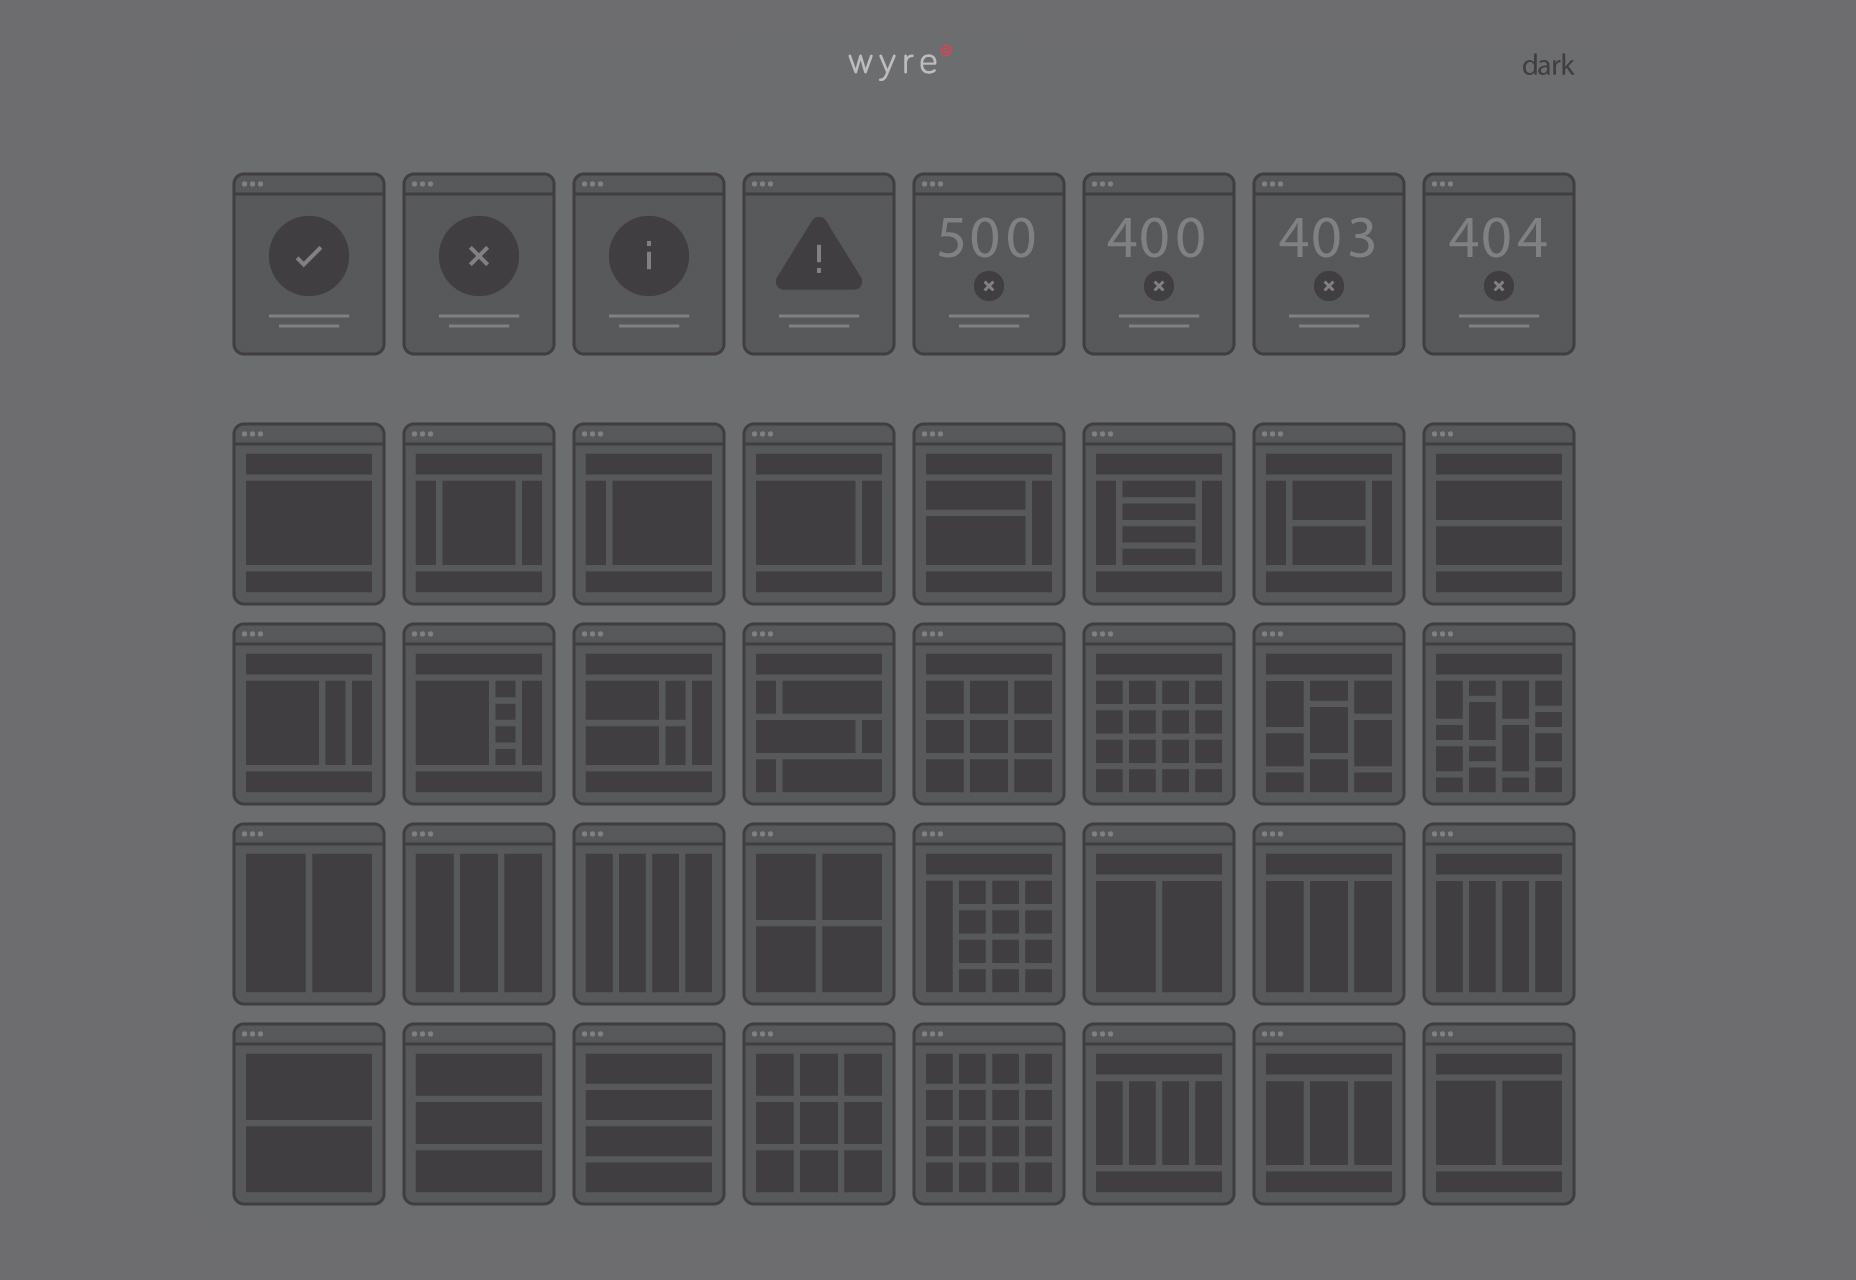 wyre-web-layout-tiles-flowchart-templates